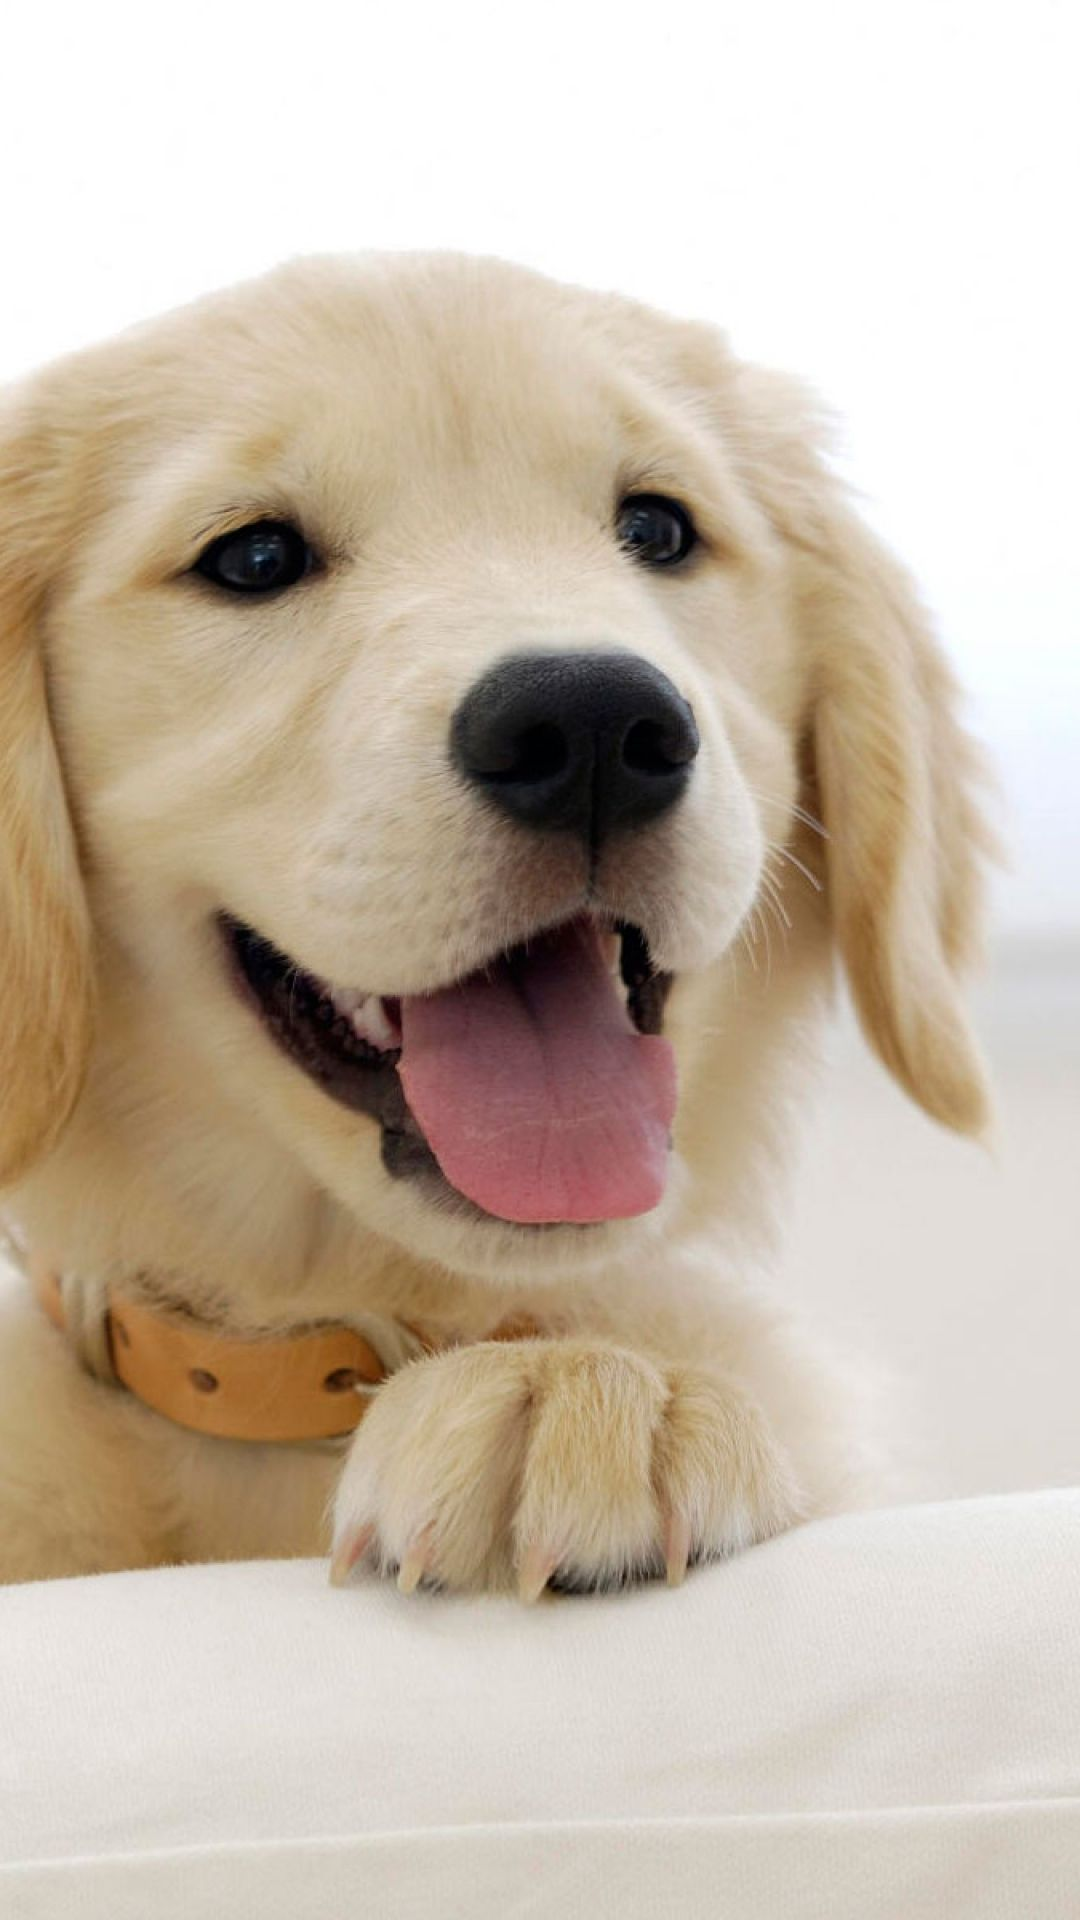 Golden Retriever Puppy Cute Dog Muzzle Dog Muzzle Cute Dogs And Puppies Dogs